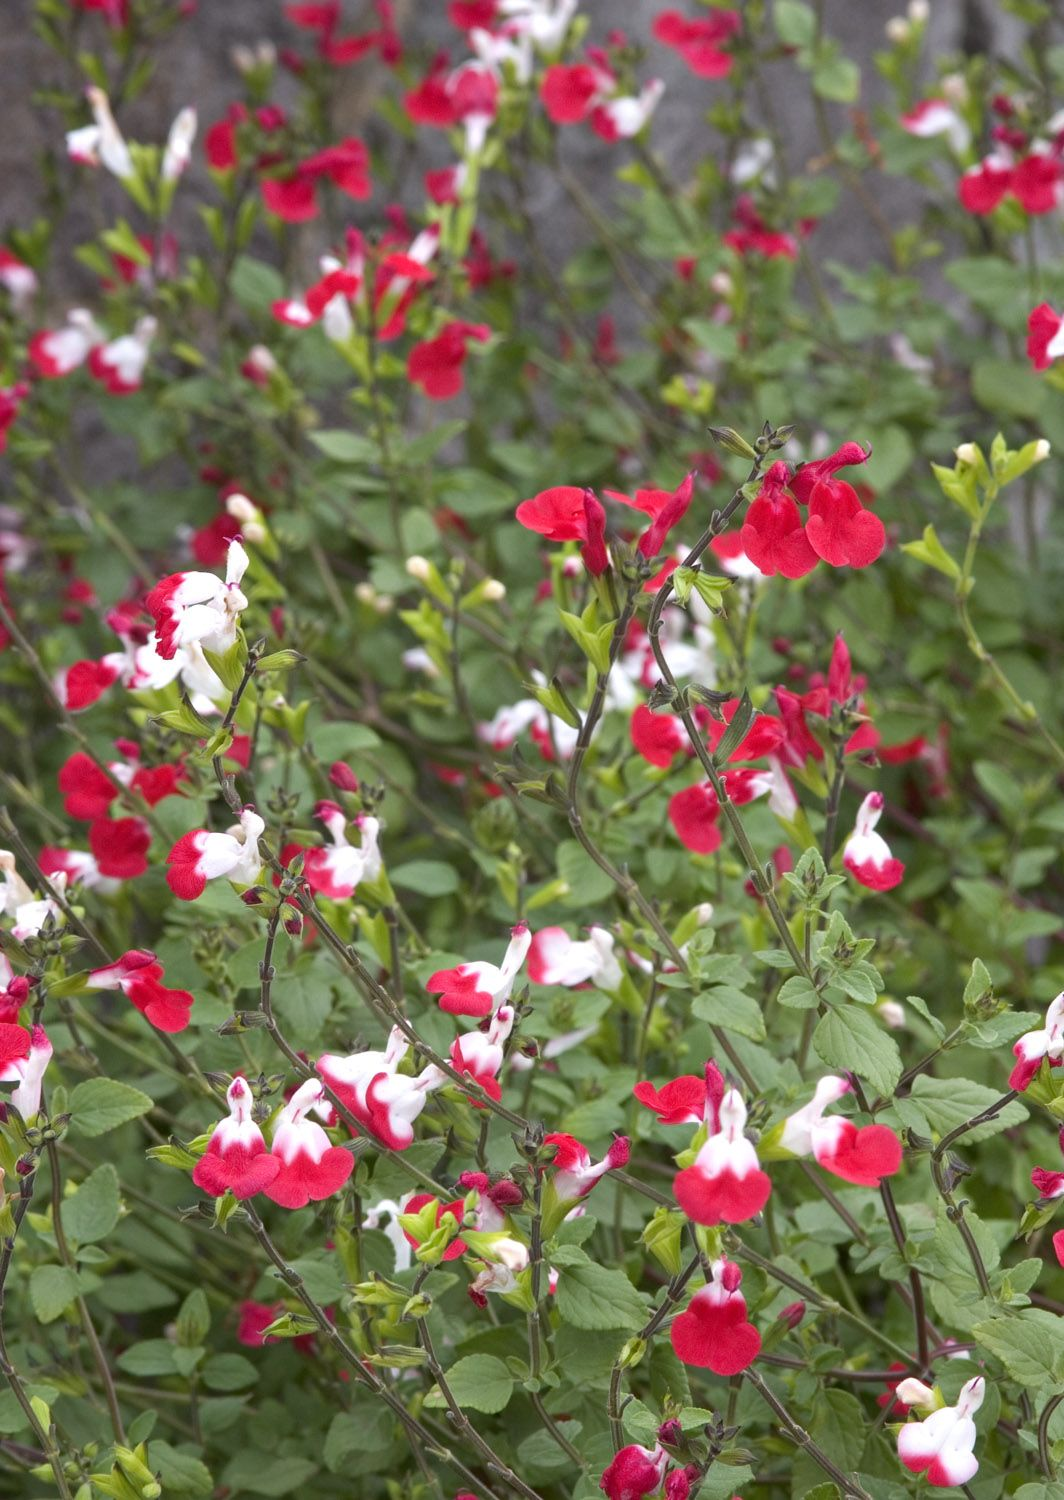 Pin On Plants For Hummingbirds And Butterflies